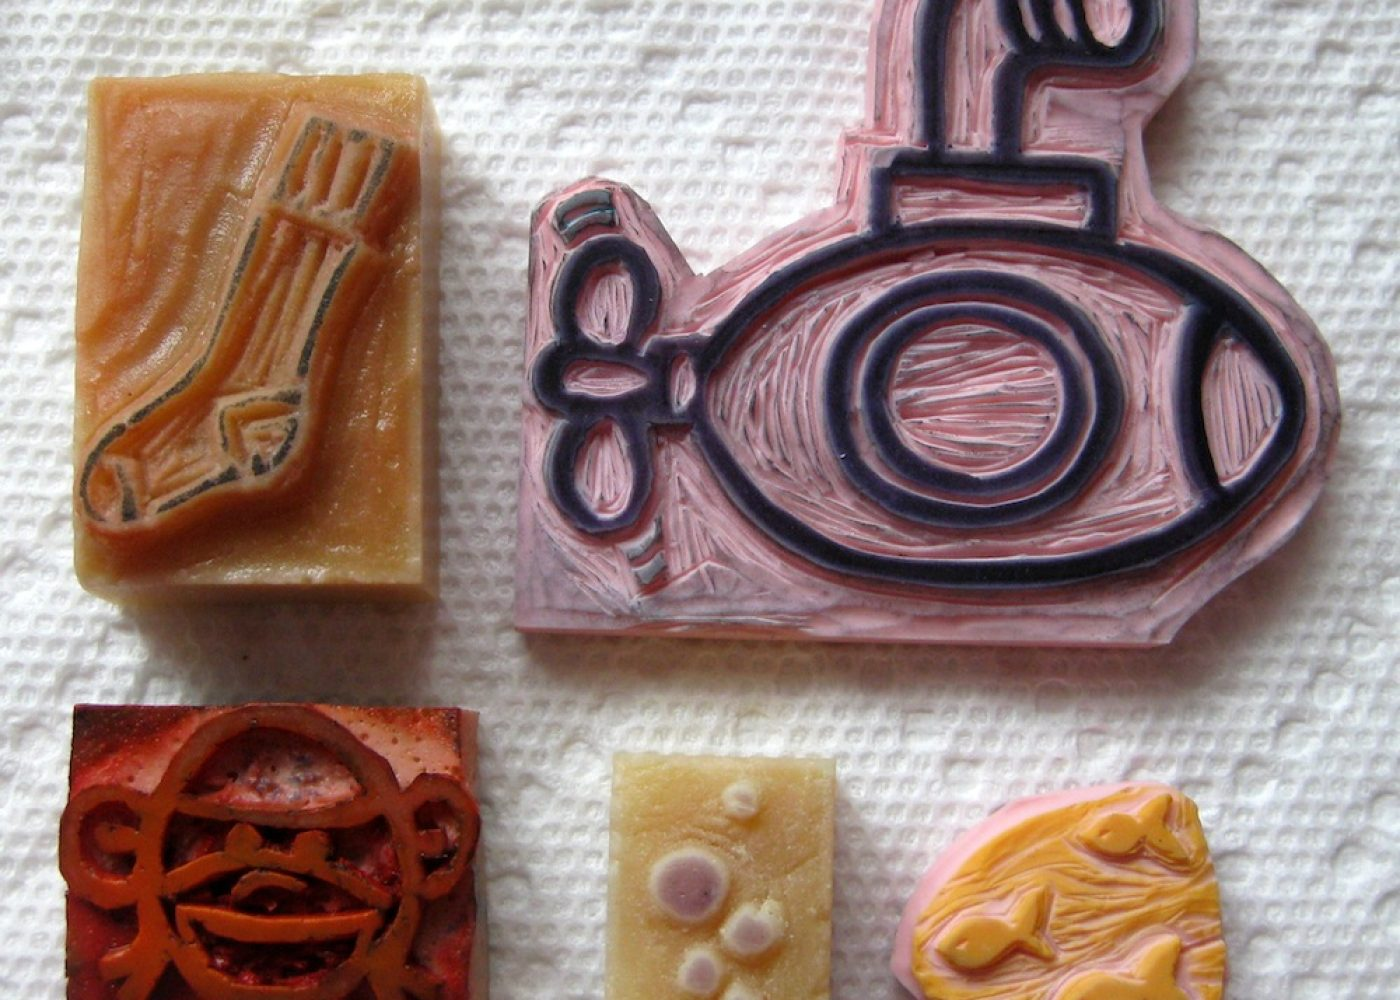 Handmade, One of a Kind Rubber Stamps!